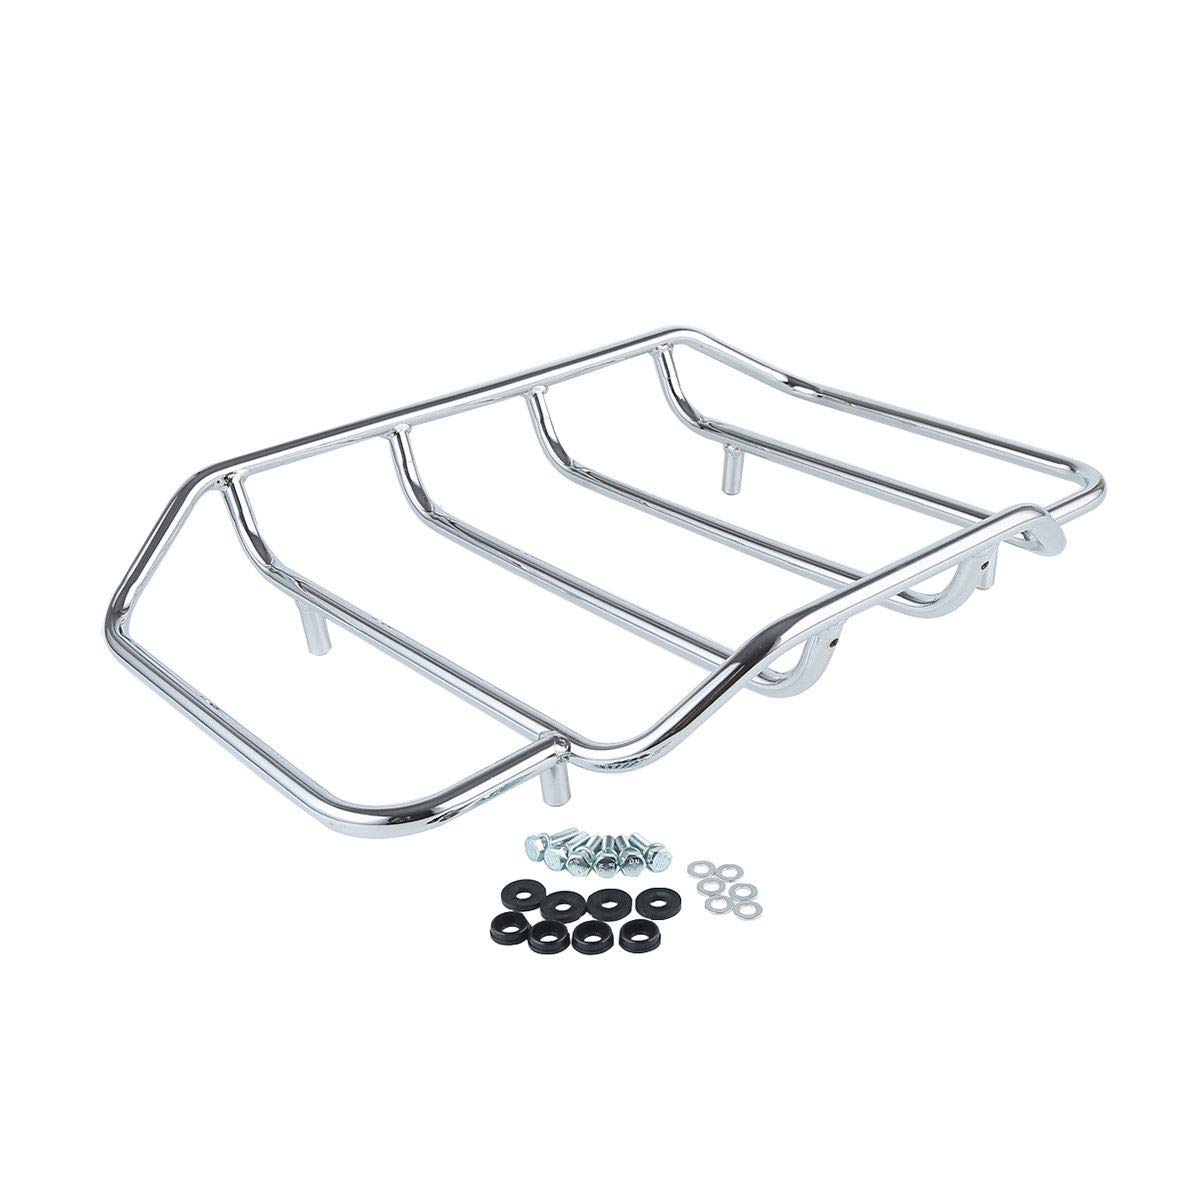 2 Up Pack Air Wing Luggage Rack W/ Light For Harley Touring Street Road Glide Ultra Classic Fltr Flhx Motorcycle Accessories & Parts Bags & Luggage